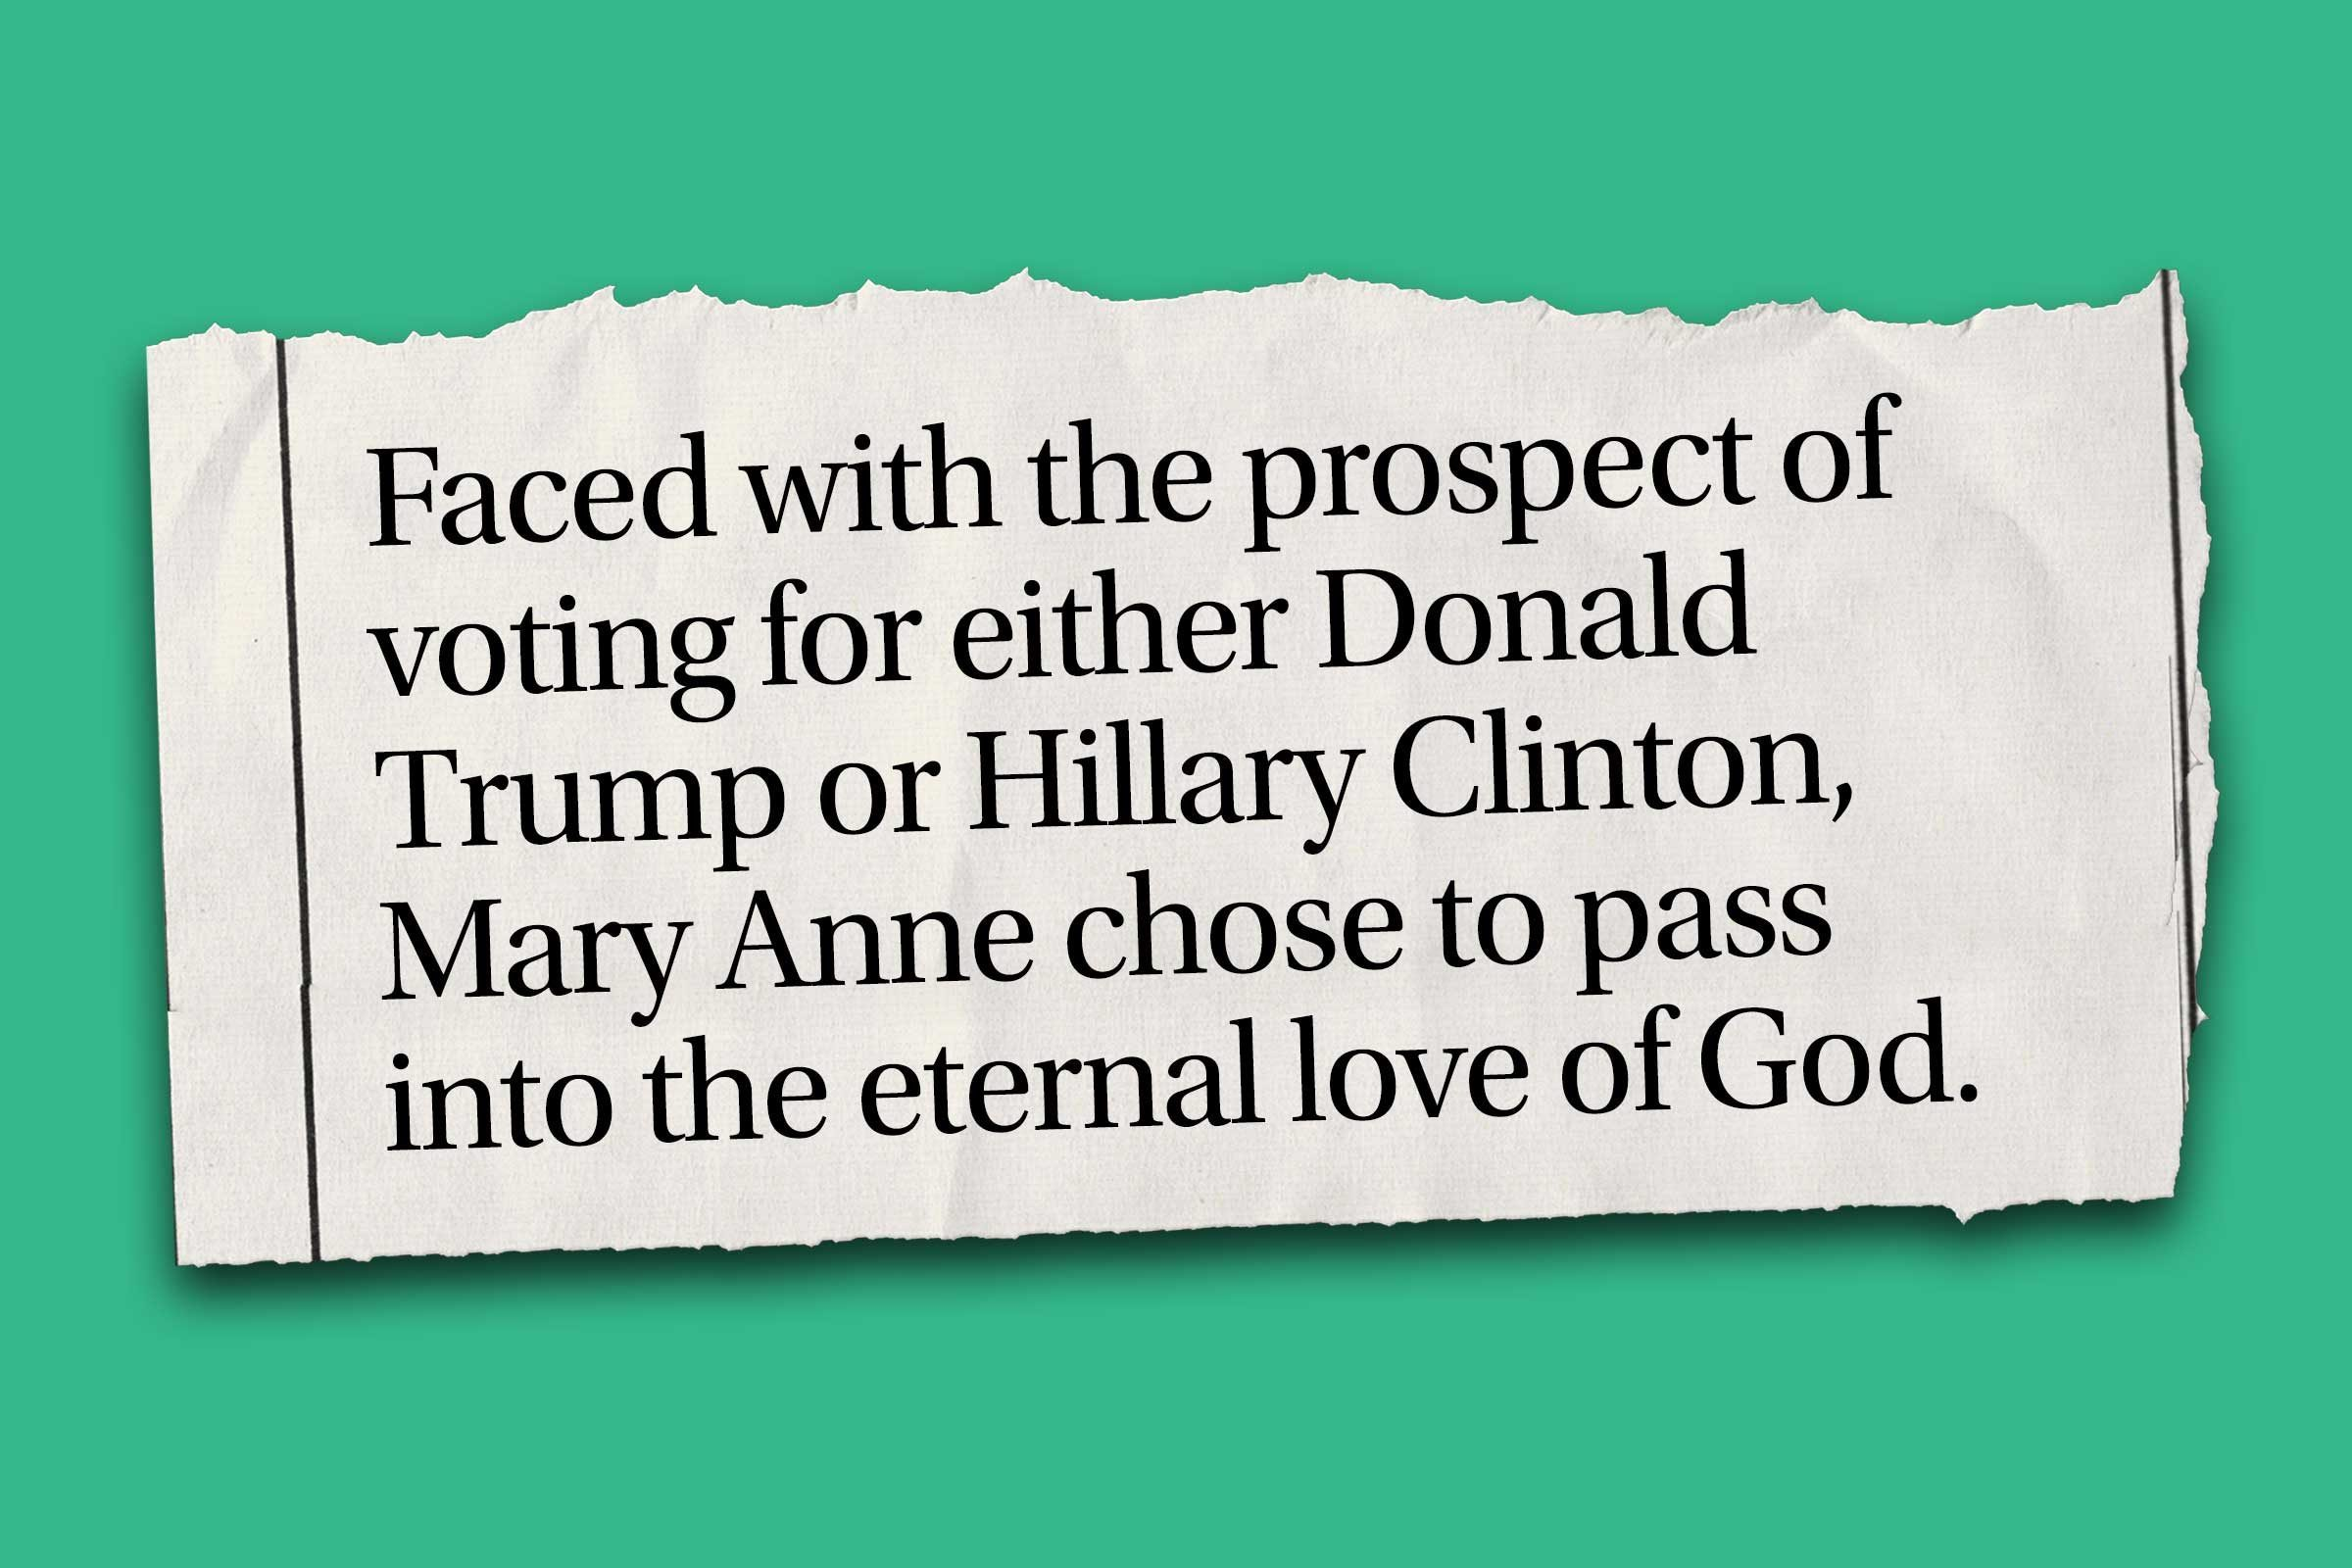 """Funniest obituaries that really exist - """"Faced with the prospect of voting for either Donald Trump or Hillary Clinton, Mary Anne chose to pass into the eternal love of God."""""""